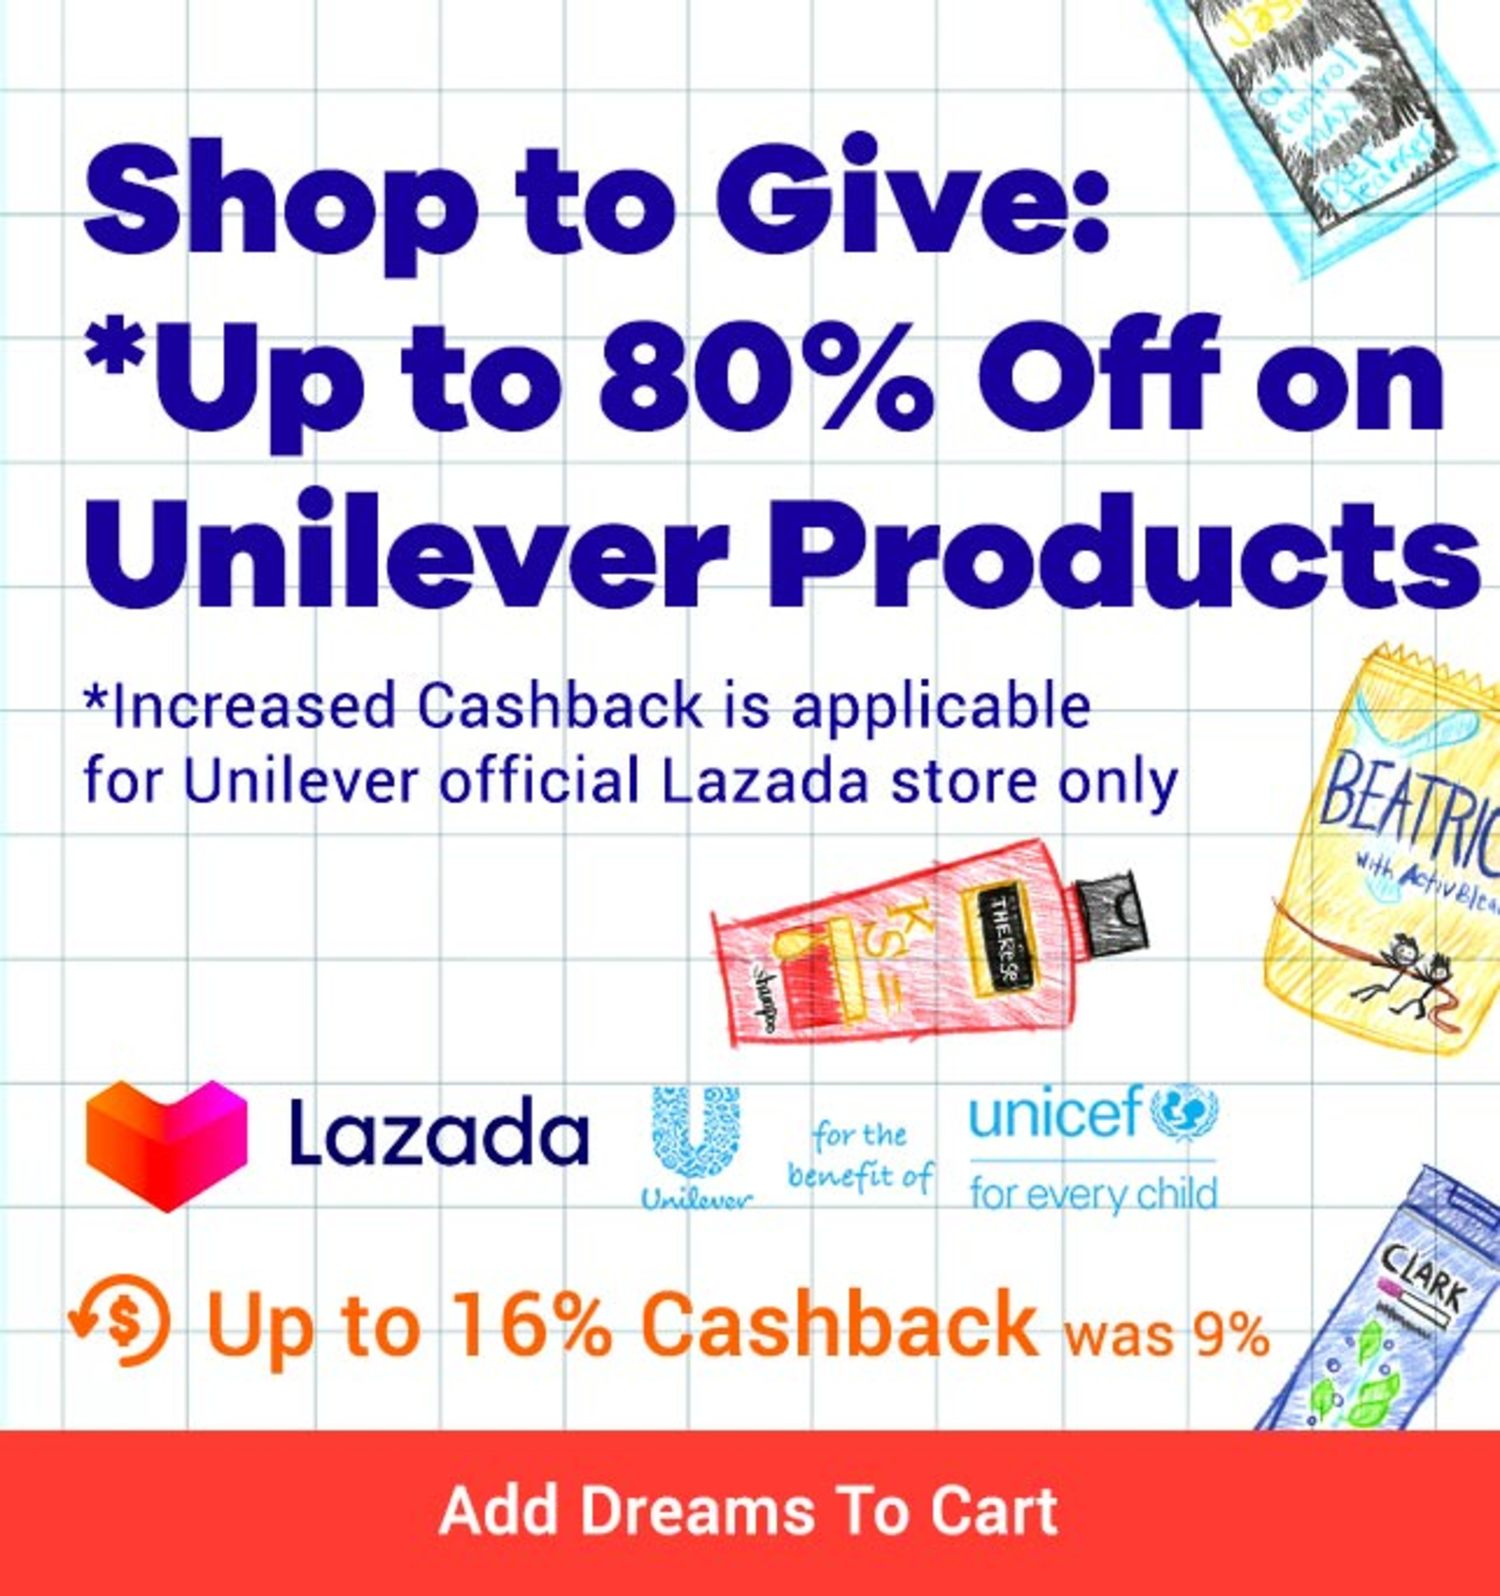 Lazada Unilever Sale Up to 80% off Up to 16% Cashback